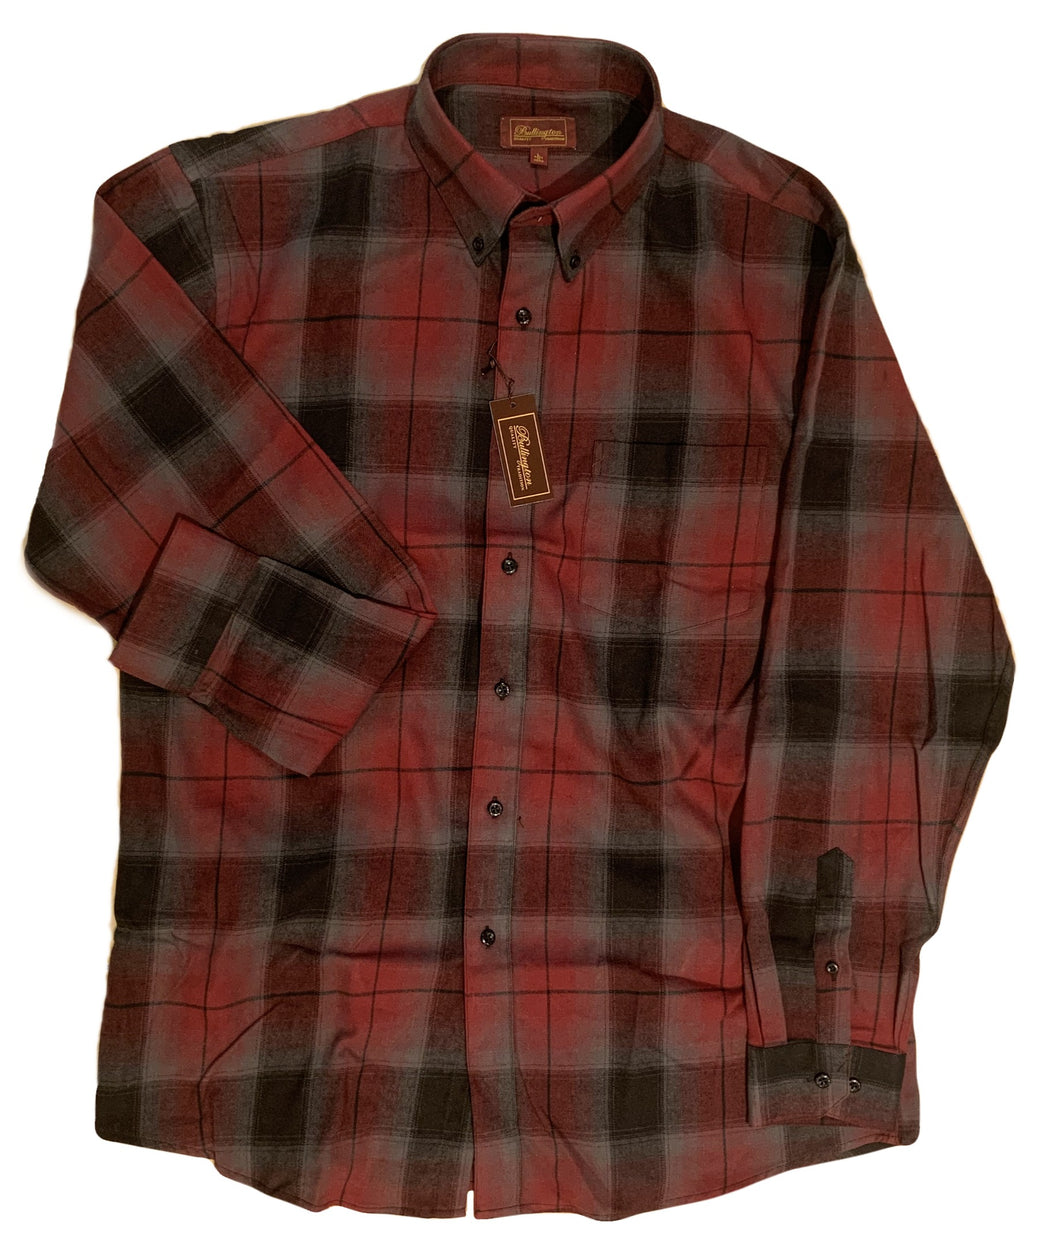 LONG-SLEEVE BRUSHED COTTON BLEND FLANNEL